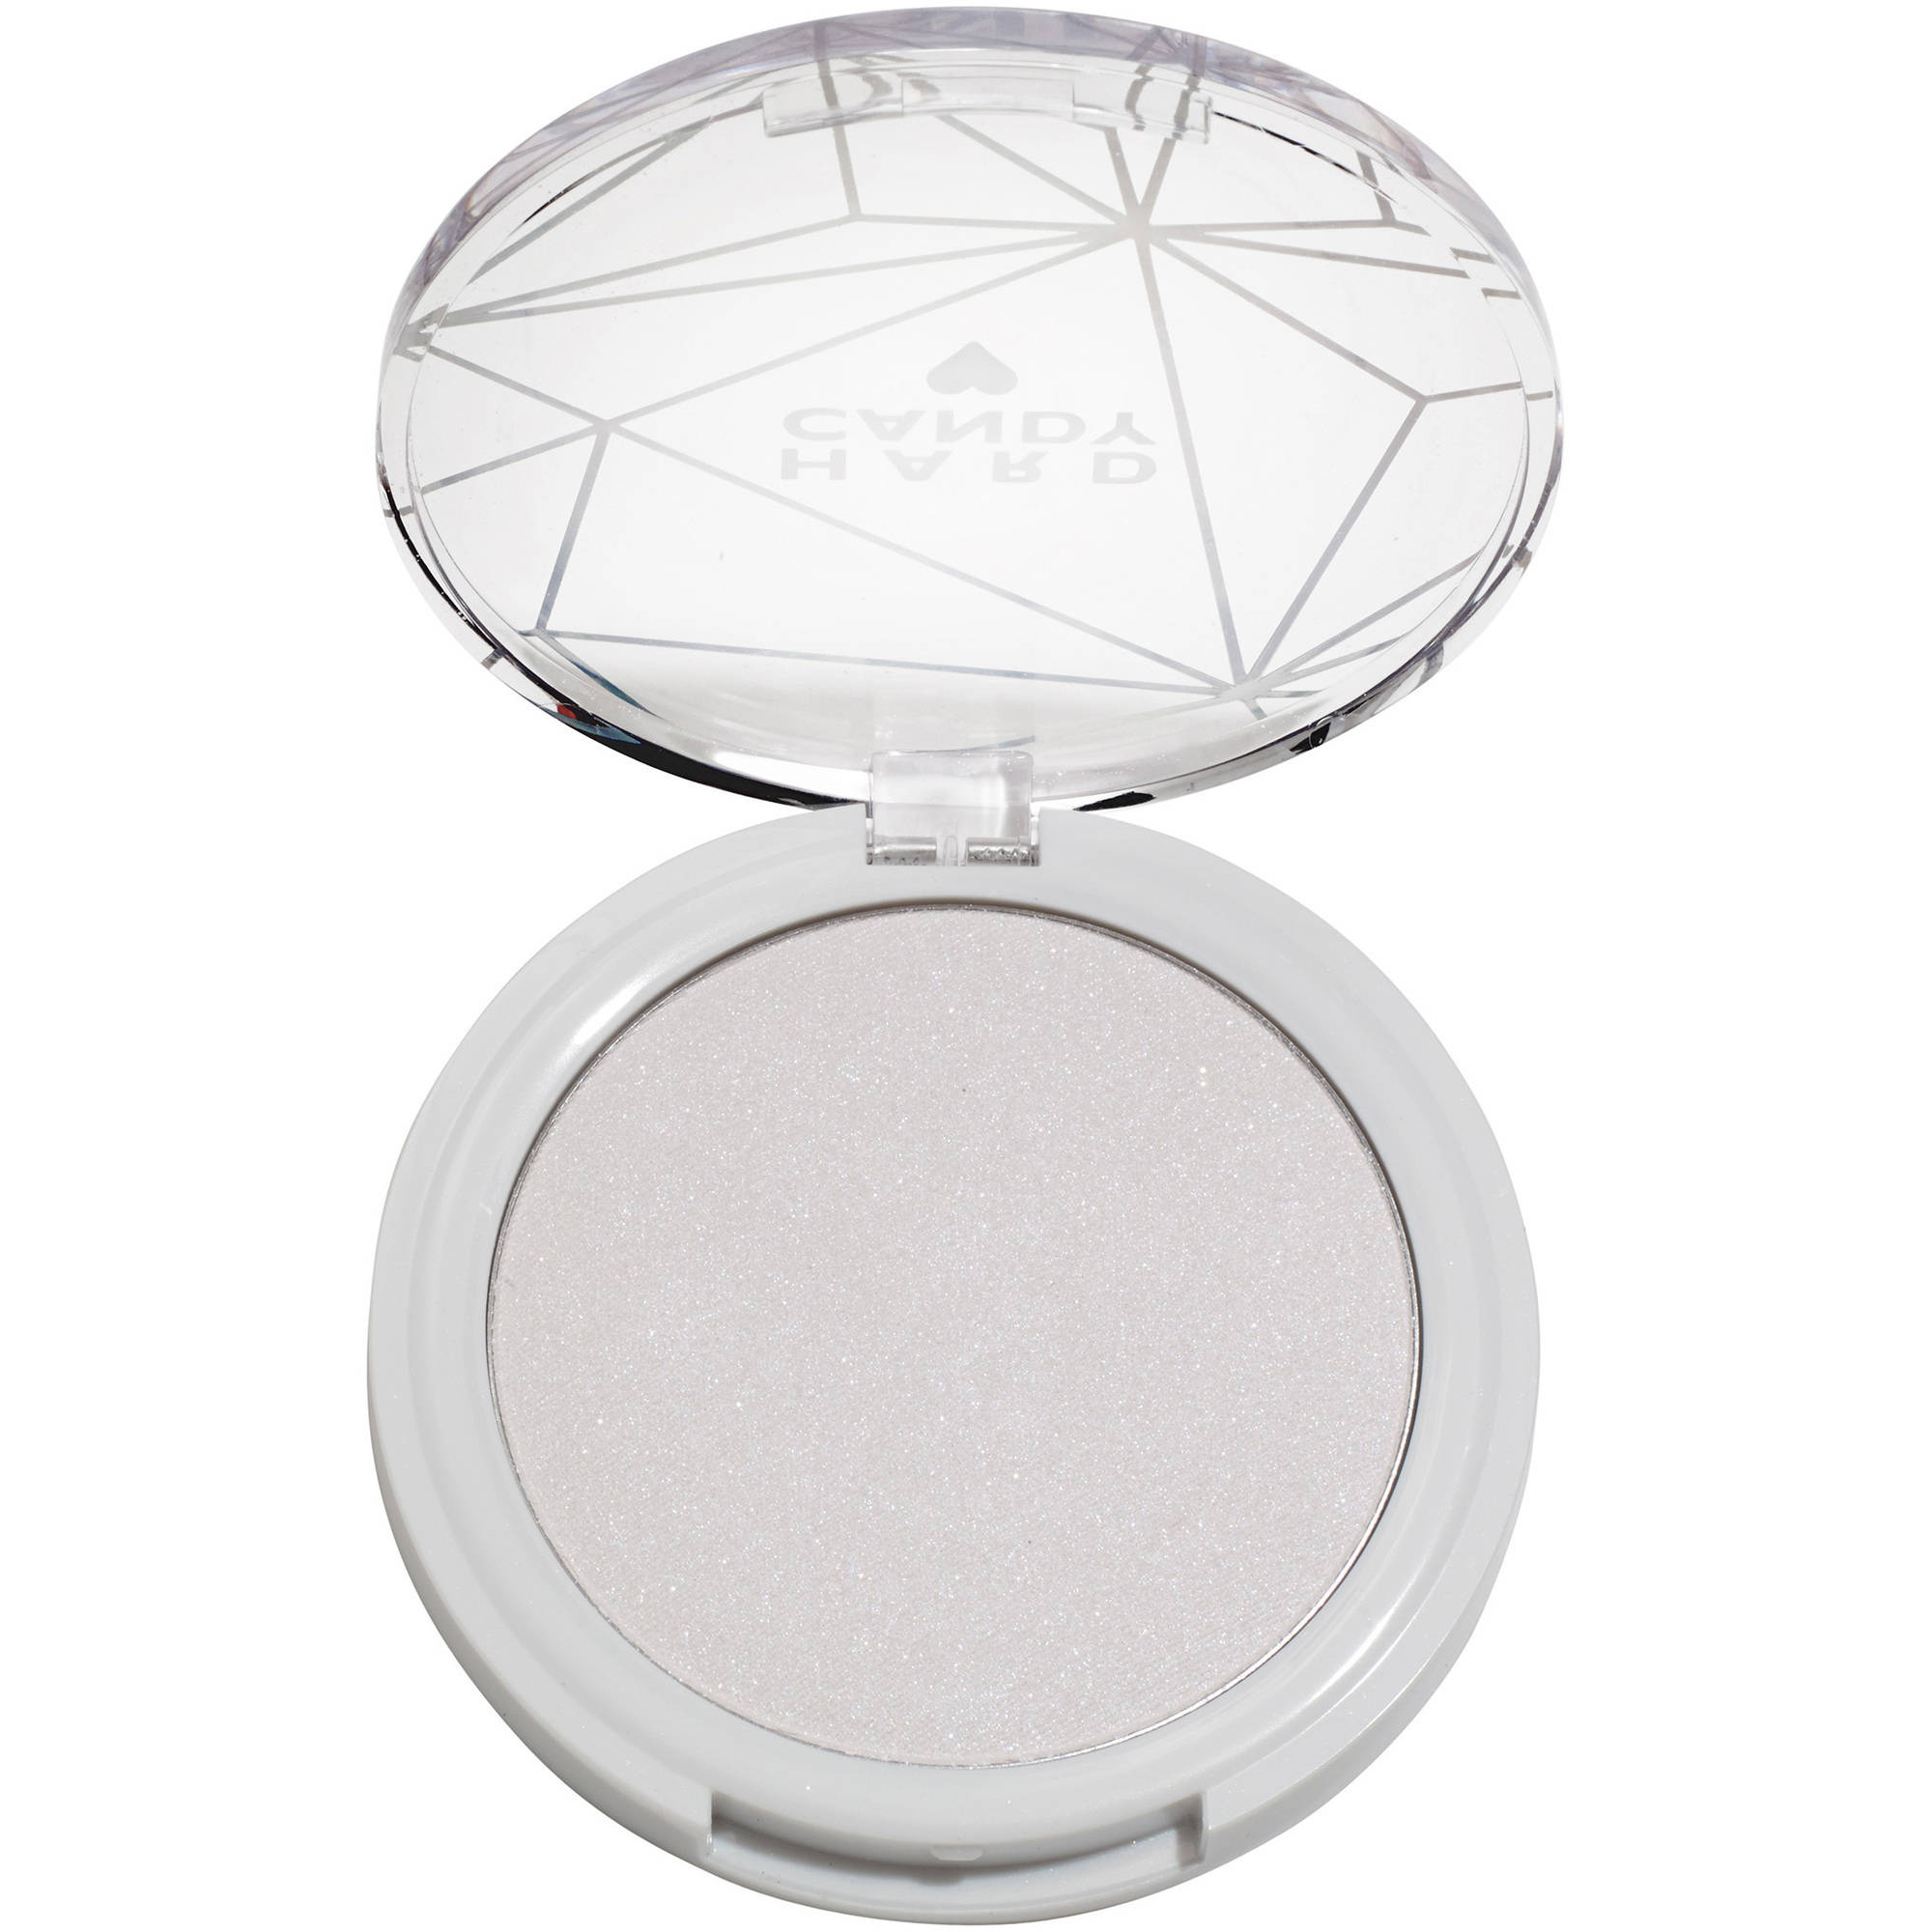 Hard Candy, Iridescent Pearl Highlighter, 1244 Prismatic Highlighter, 0.42 oz